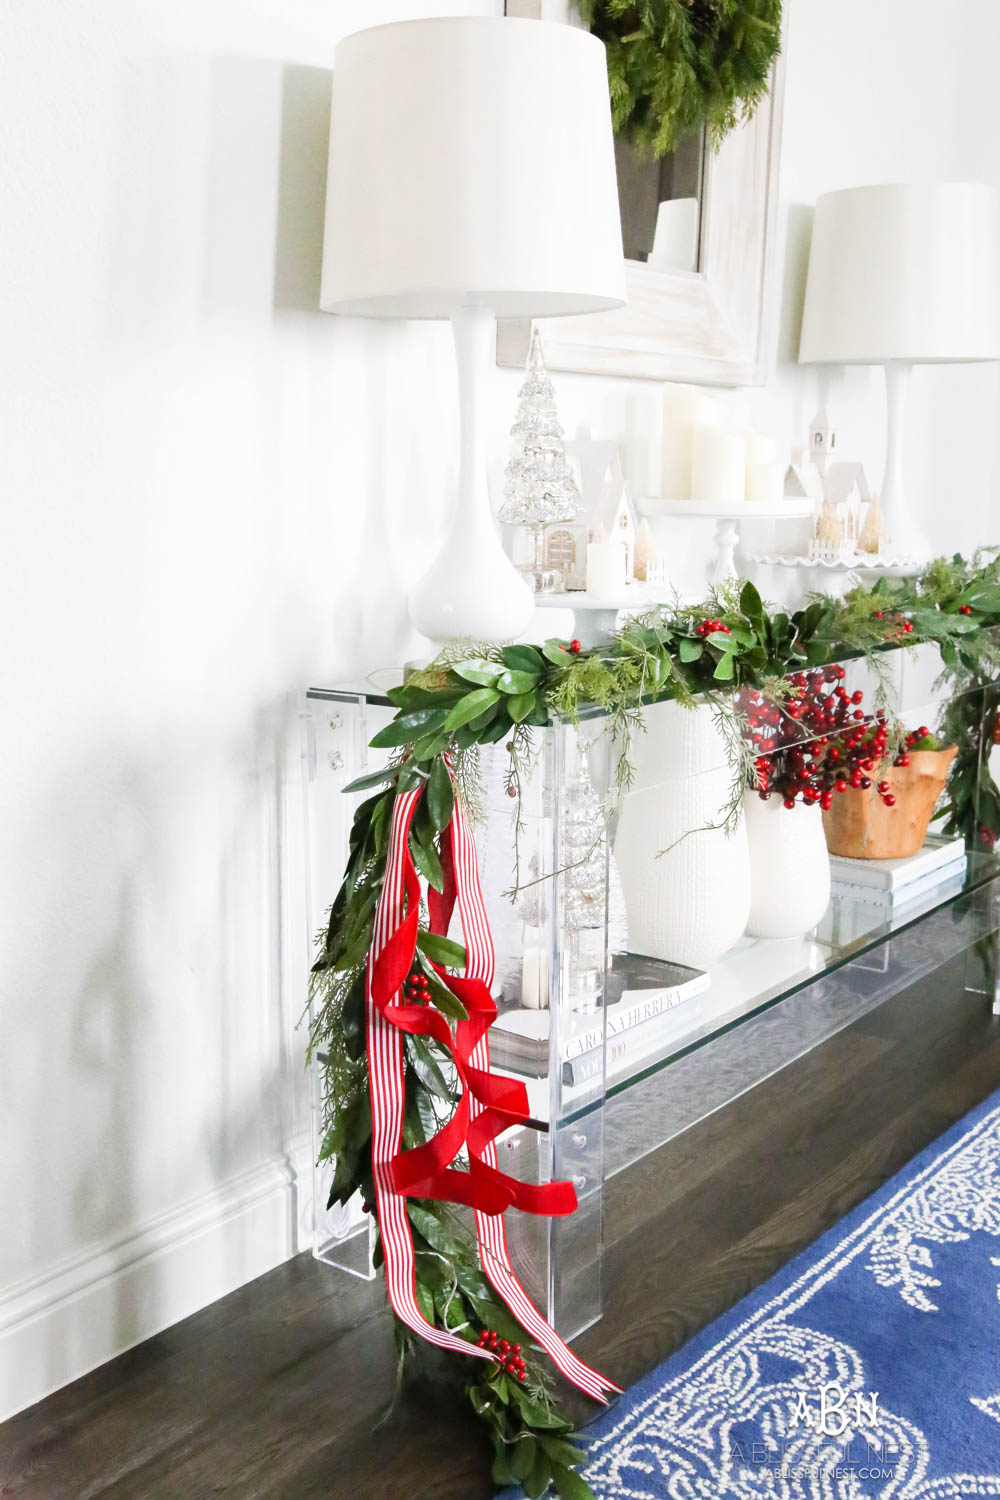 Layered garland makes a full look and adding in festive red and white ribbon. Love these easy and simple classic Christmas touches in this entryway. #christmasentryway #christmasentry #christmasentrydecor #christmasentrywayideas #christmashometour